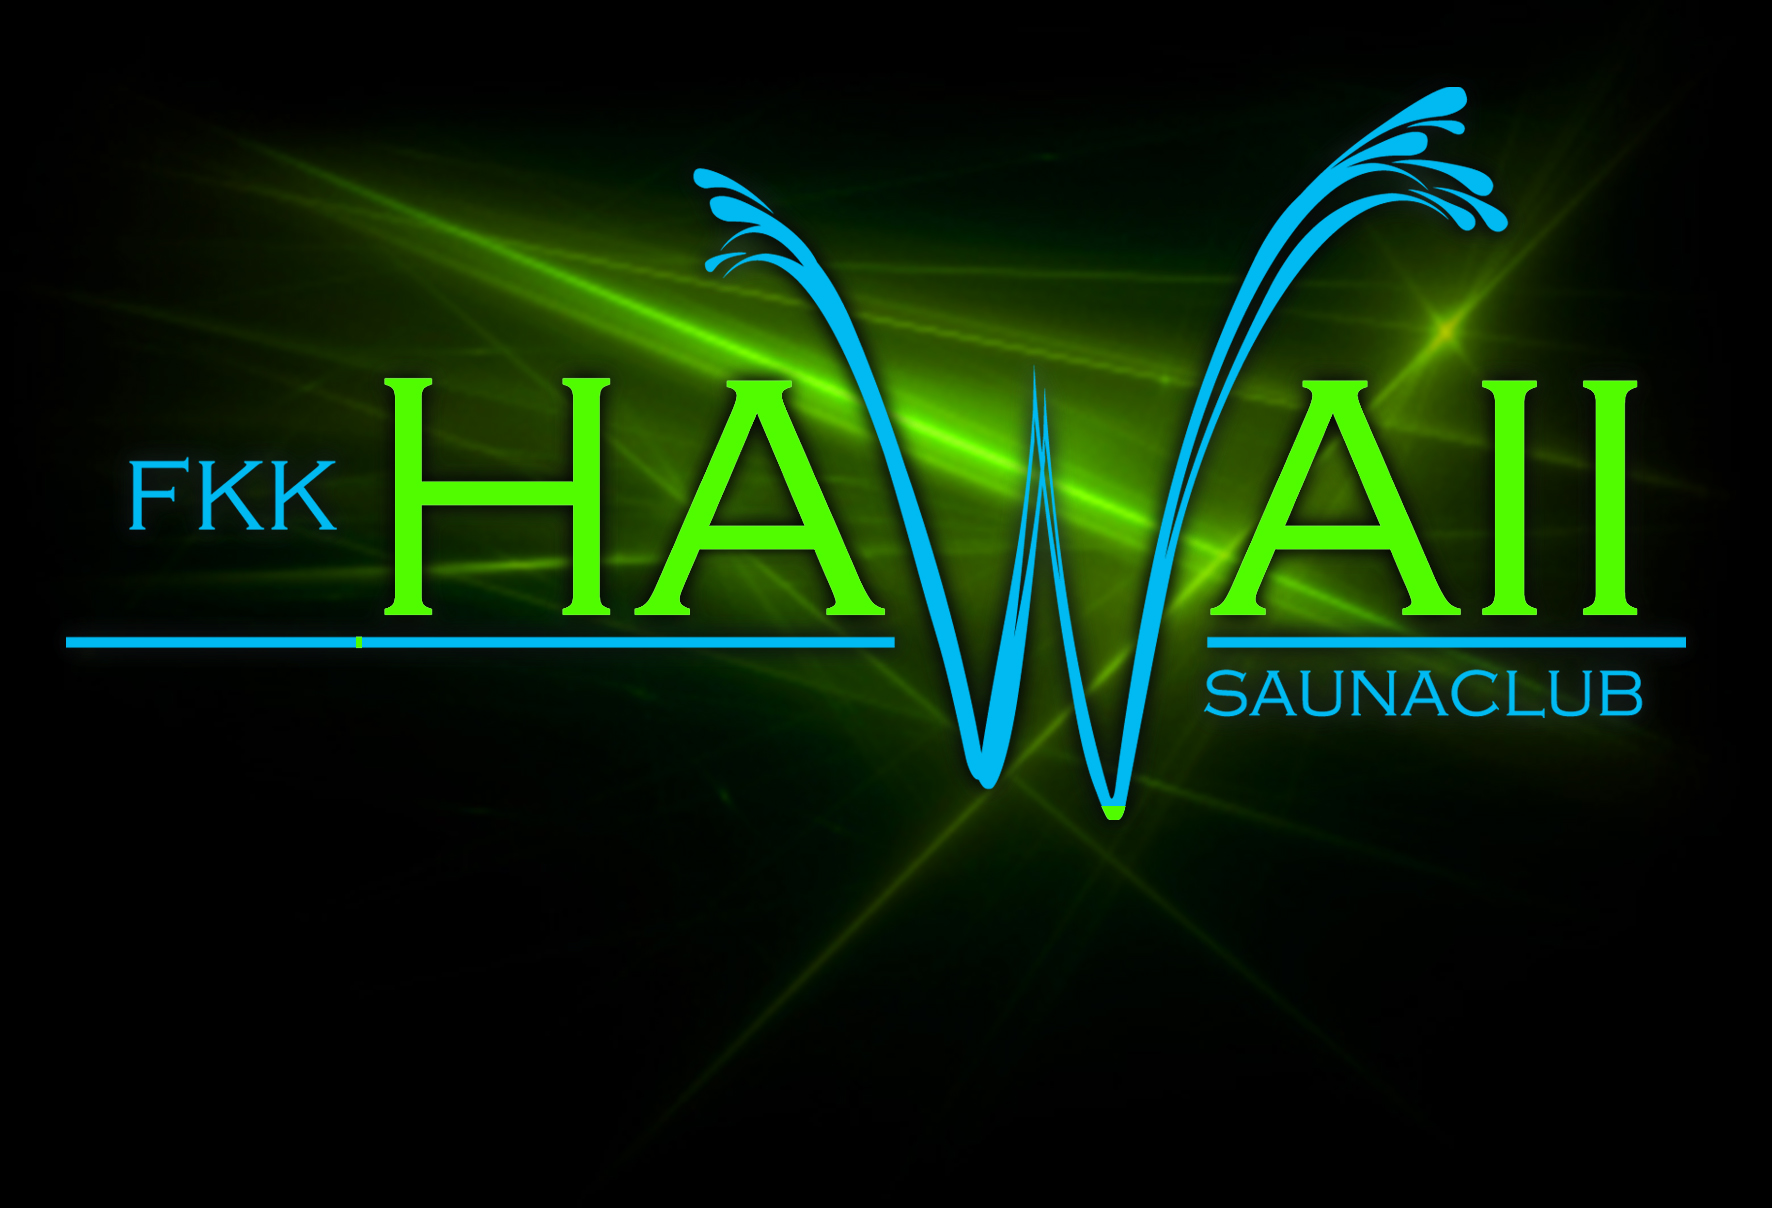 club hawaii